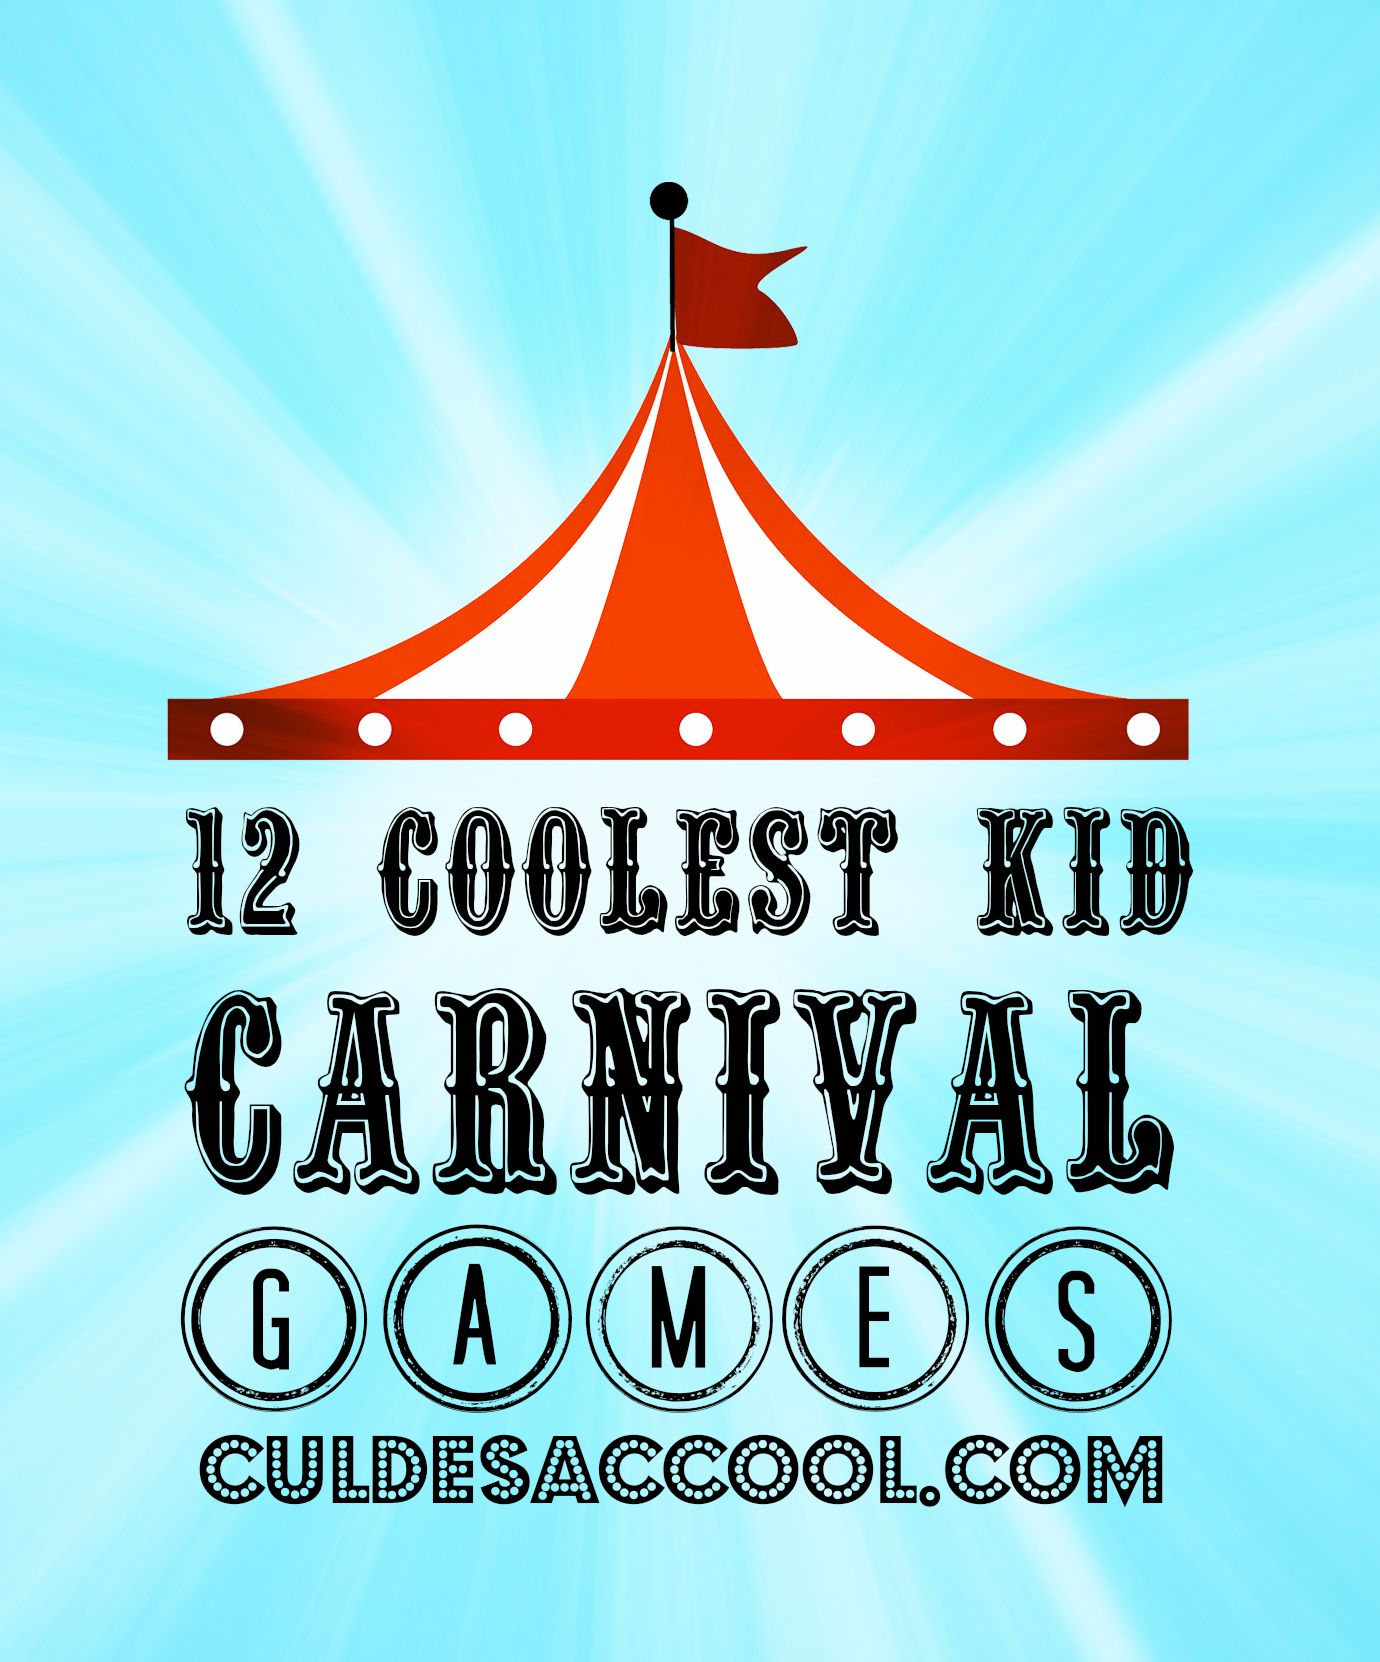 12 coolest kid carnival games cover2.